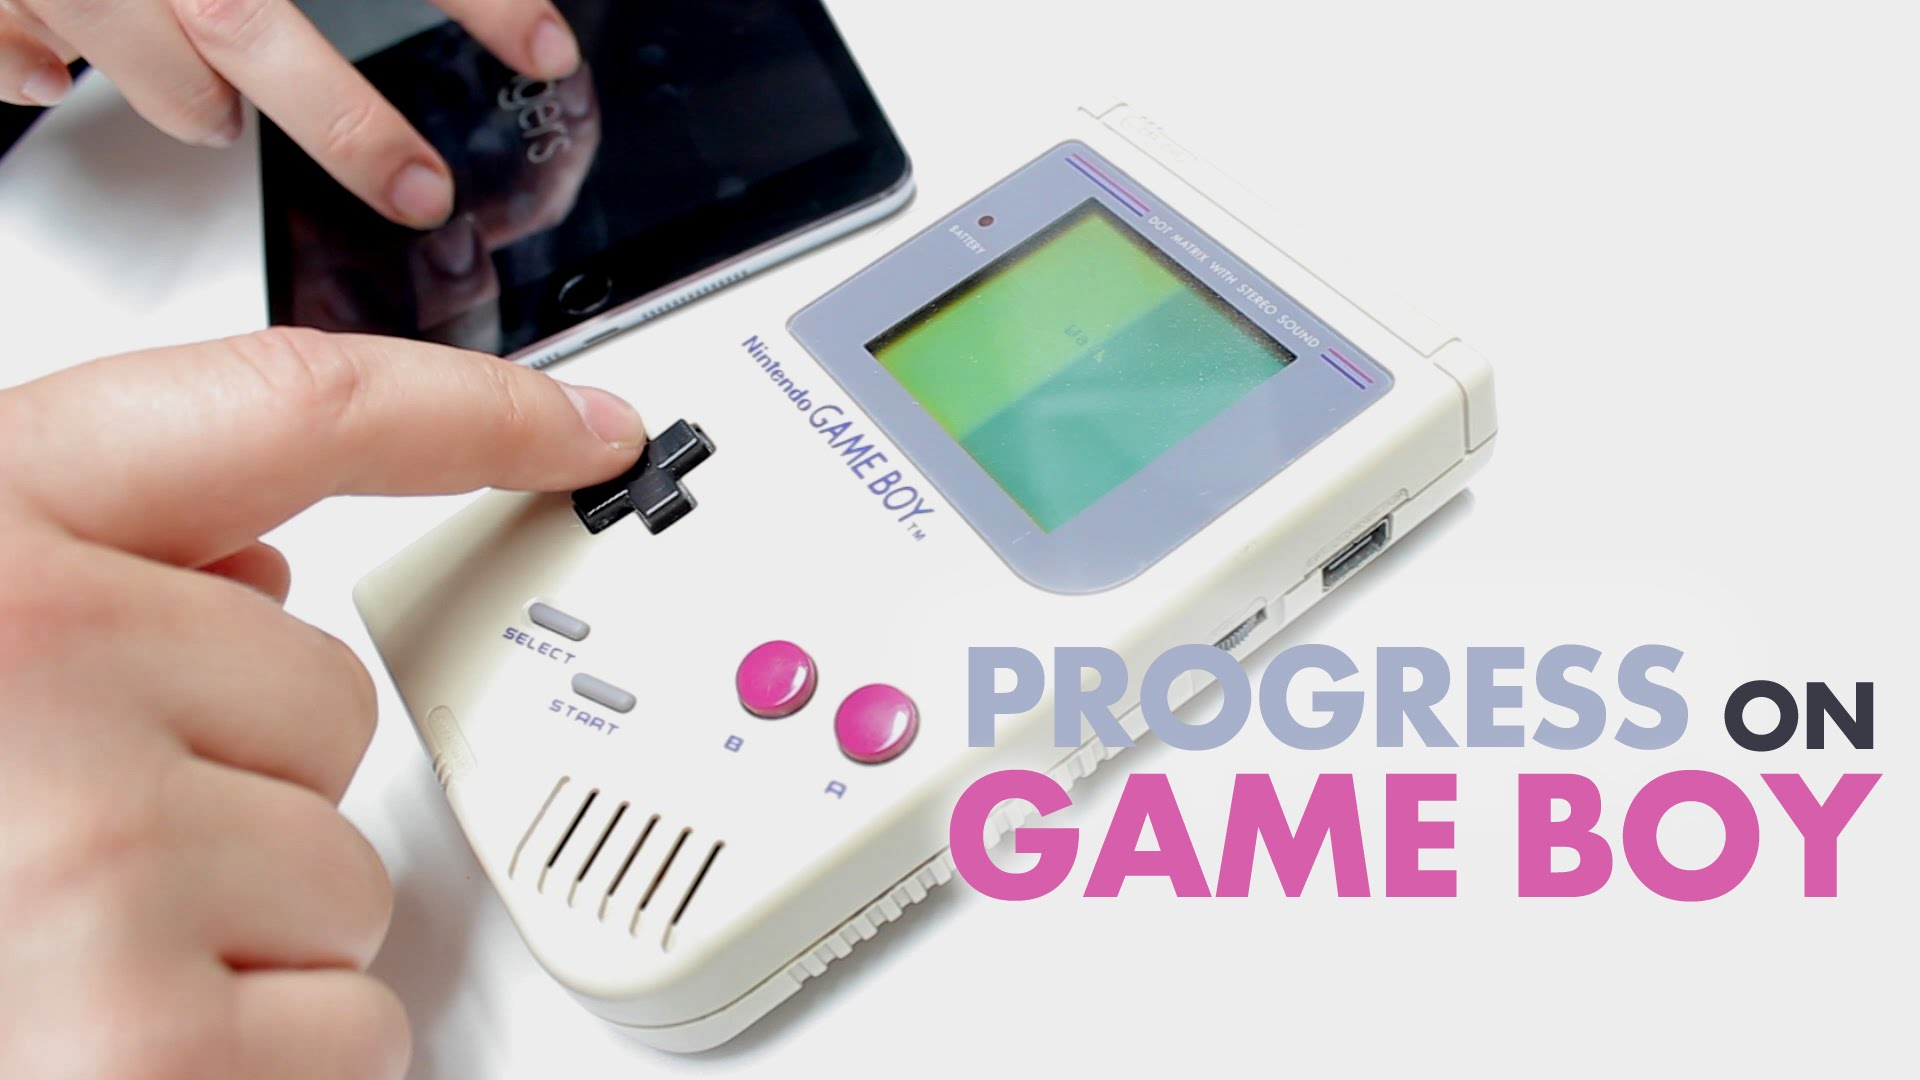 Progress for Game Boy is a Big Indie Pitch winner that's headed to Nintendo's classic portable